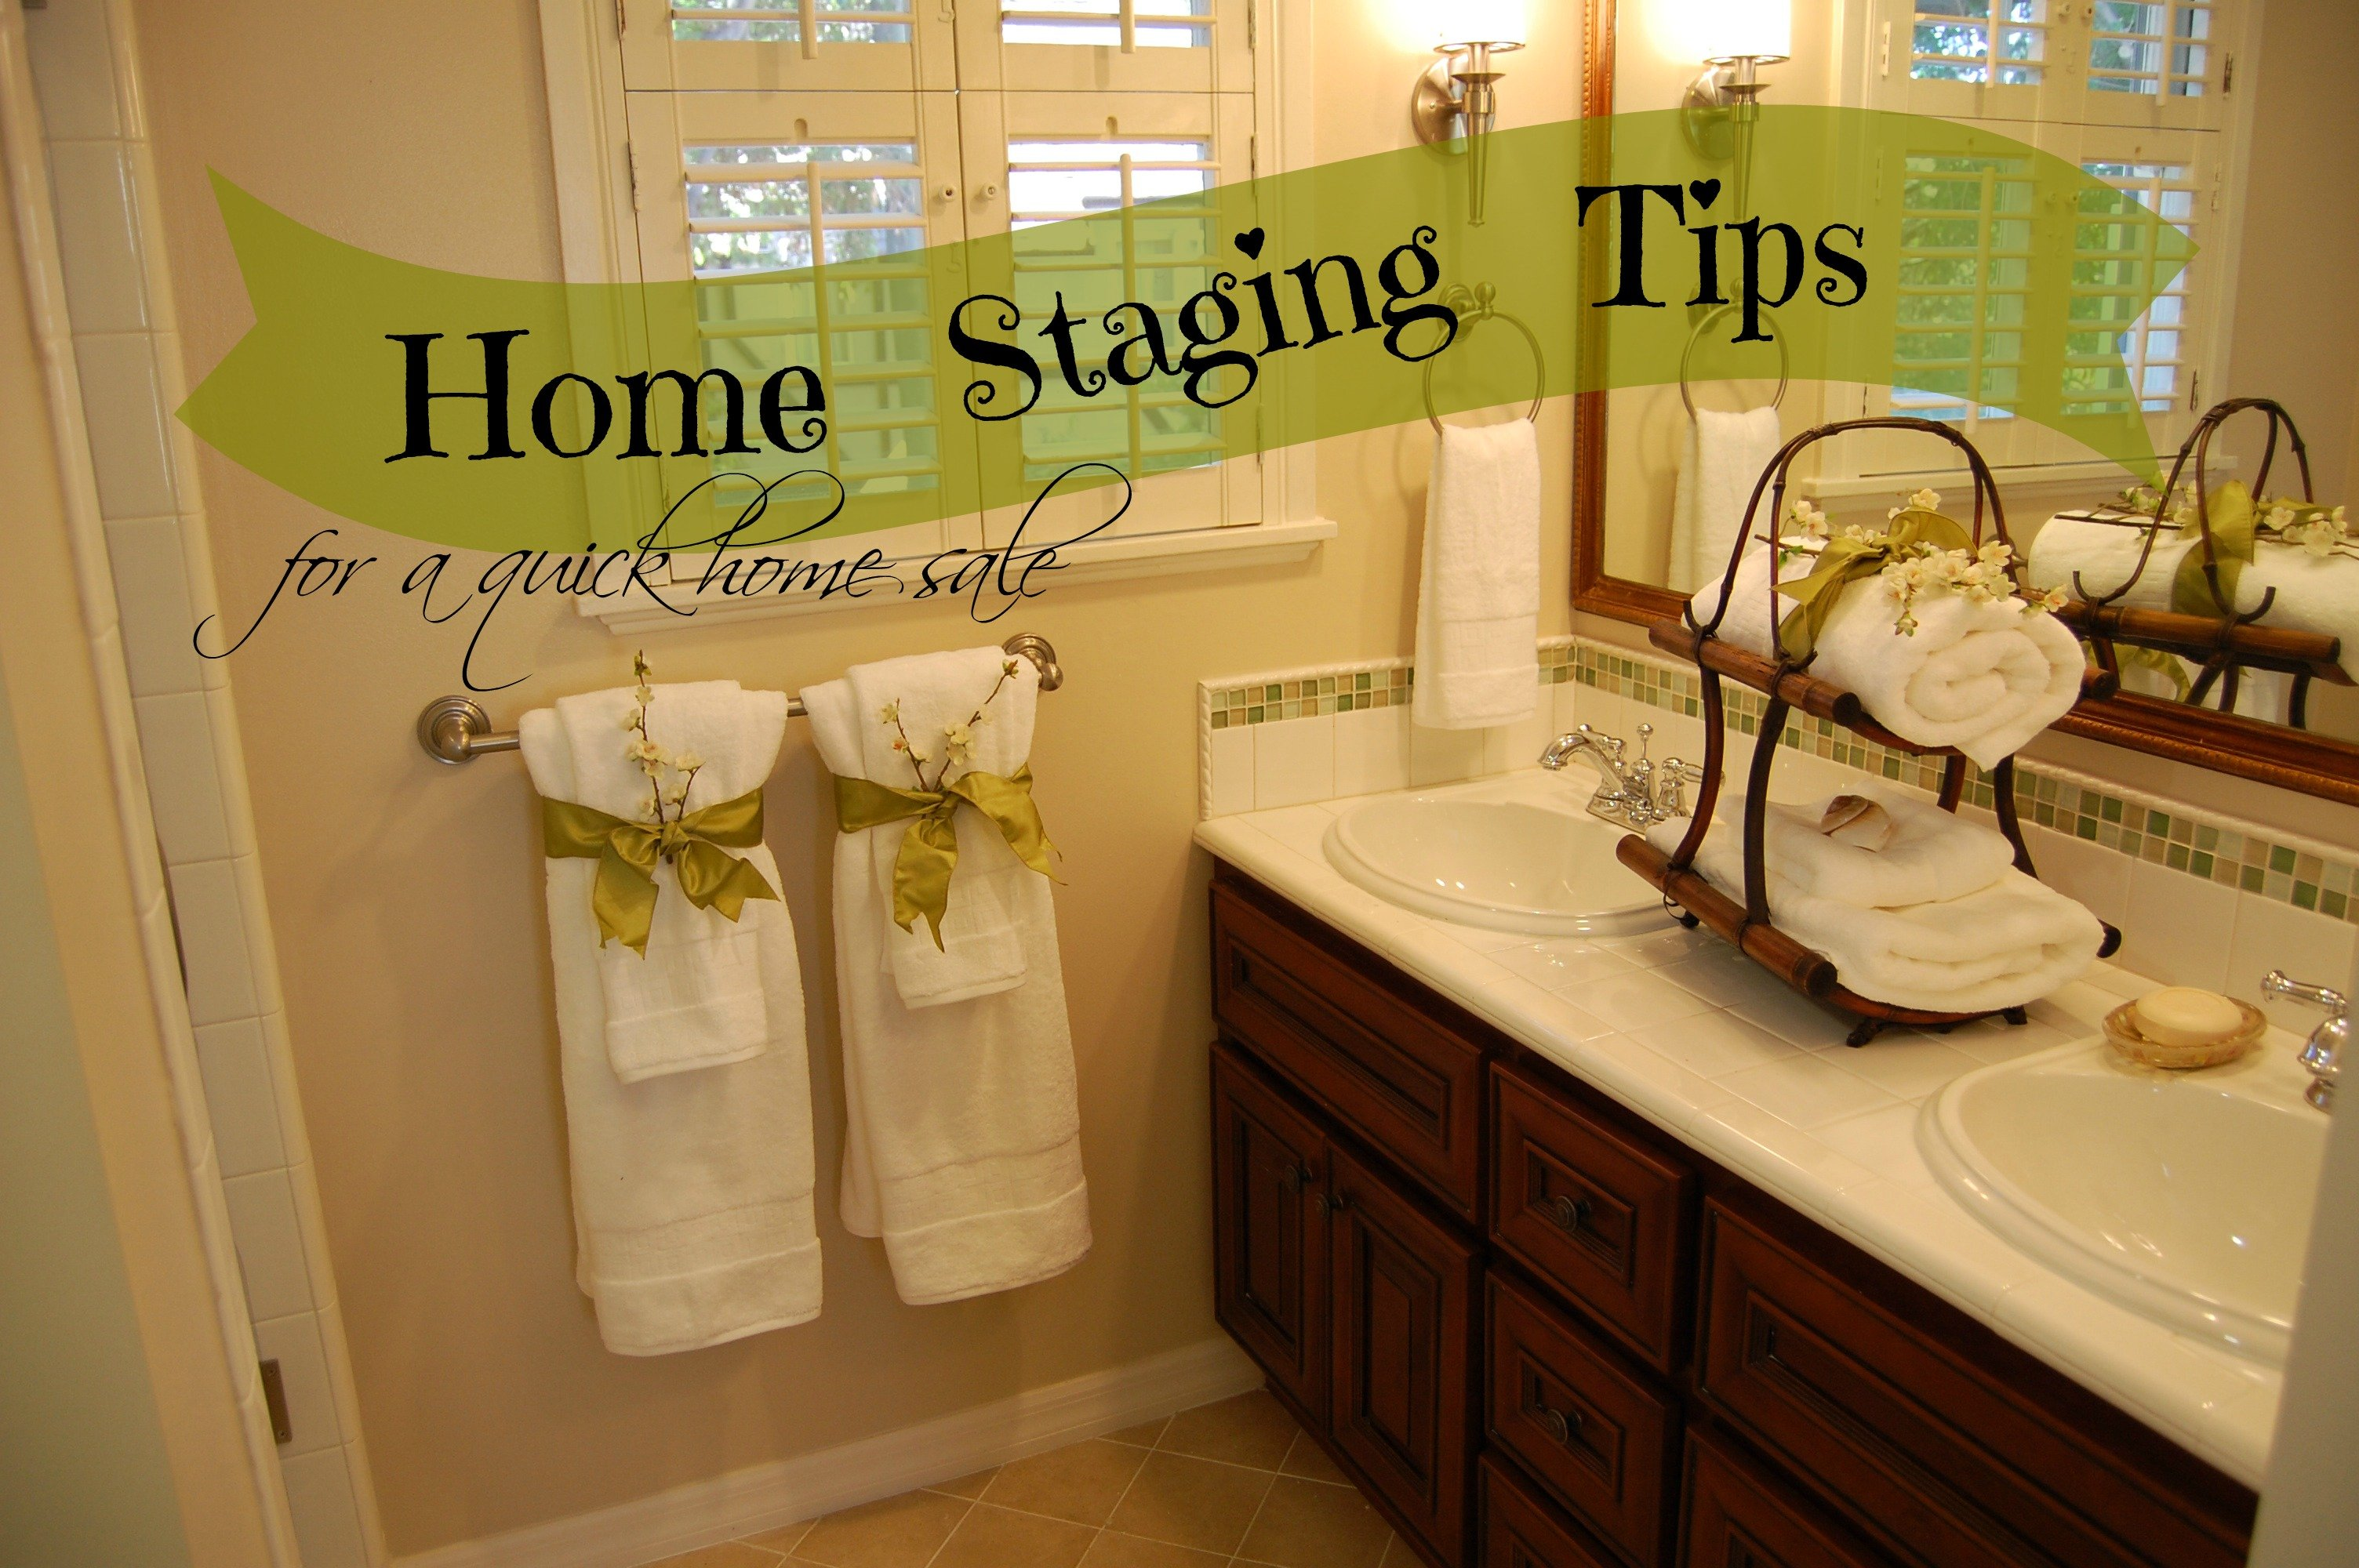 Home staging tips for a quick home sale colorado springs How to stage a home for sale pictures